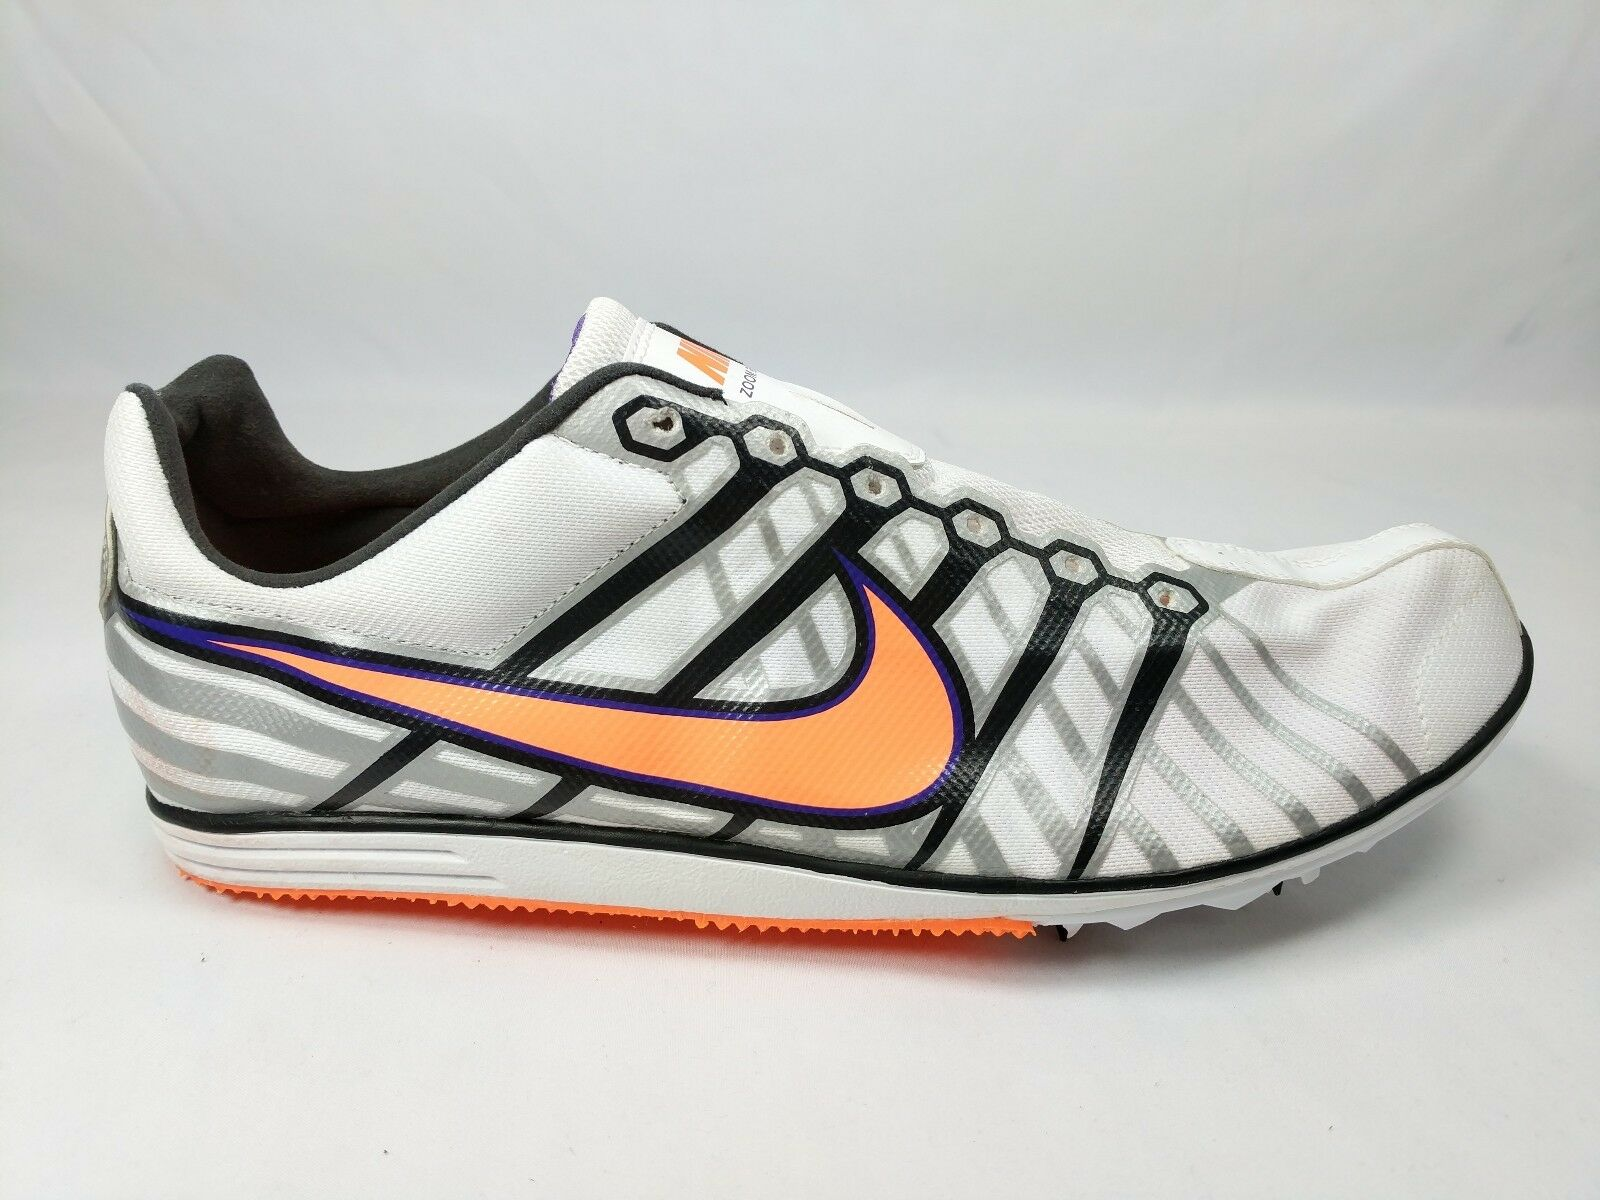 Nike Track & Field Distance Running Shoes Mens Comfortable